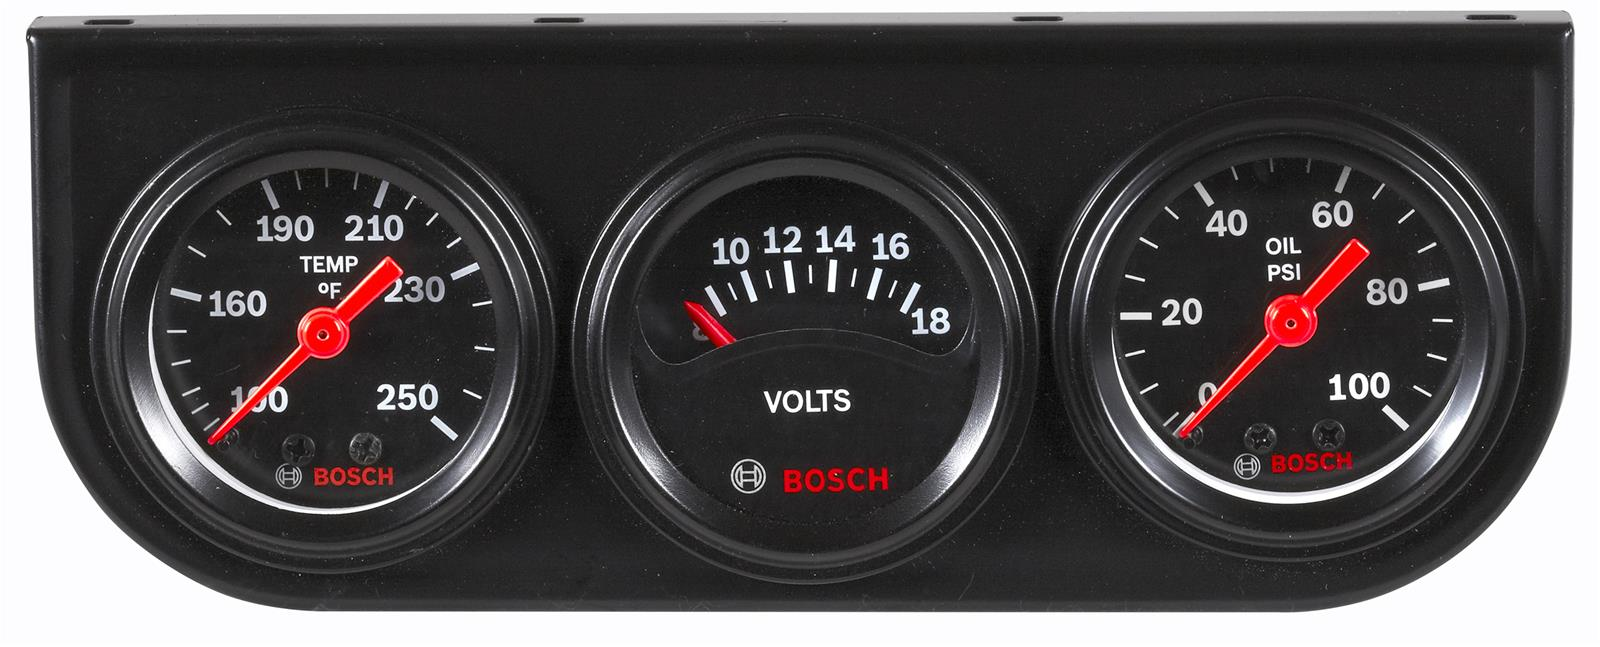 Bosch Style Line Gauge Kits Fst 8090 Free Shipping On Orders Over Tachometer Wiring 99 At Summit Racing